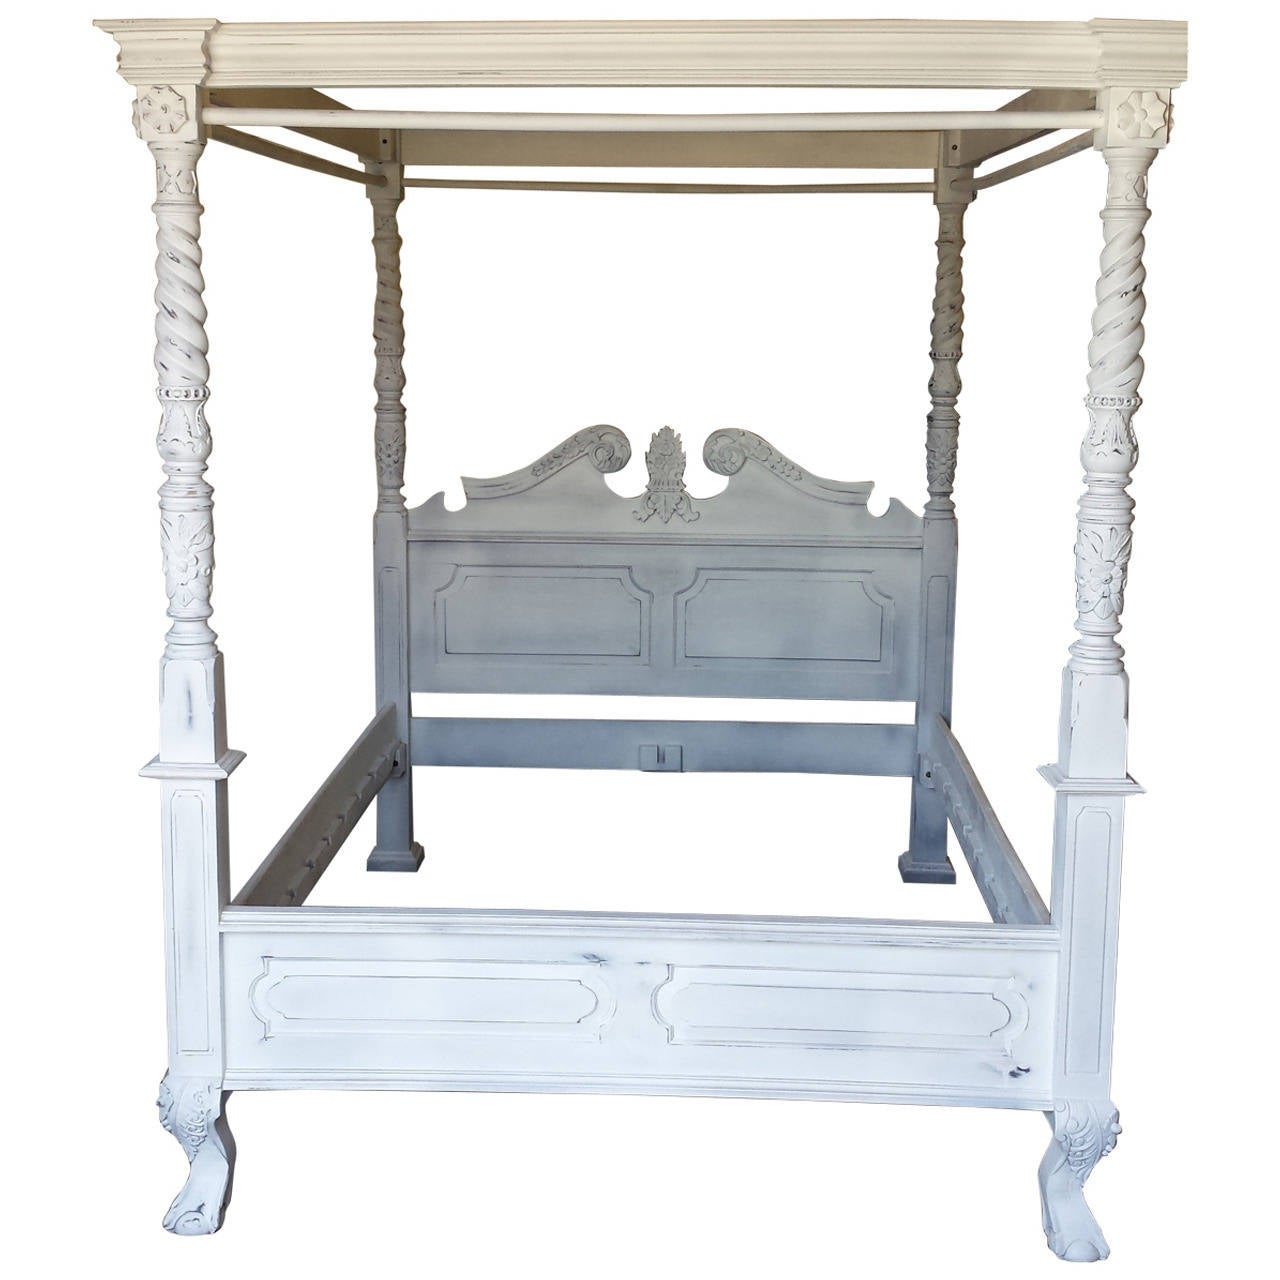 Onsale french louis xv style white canopy bed frame queen for White canopy queen bed